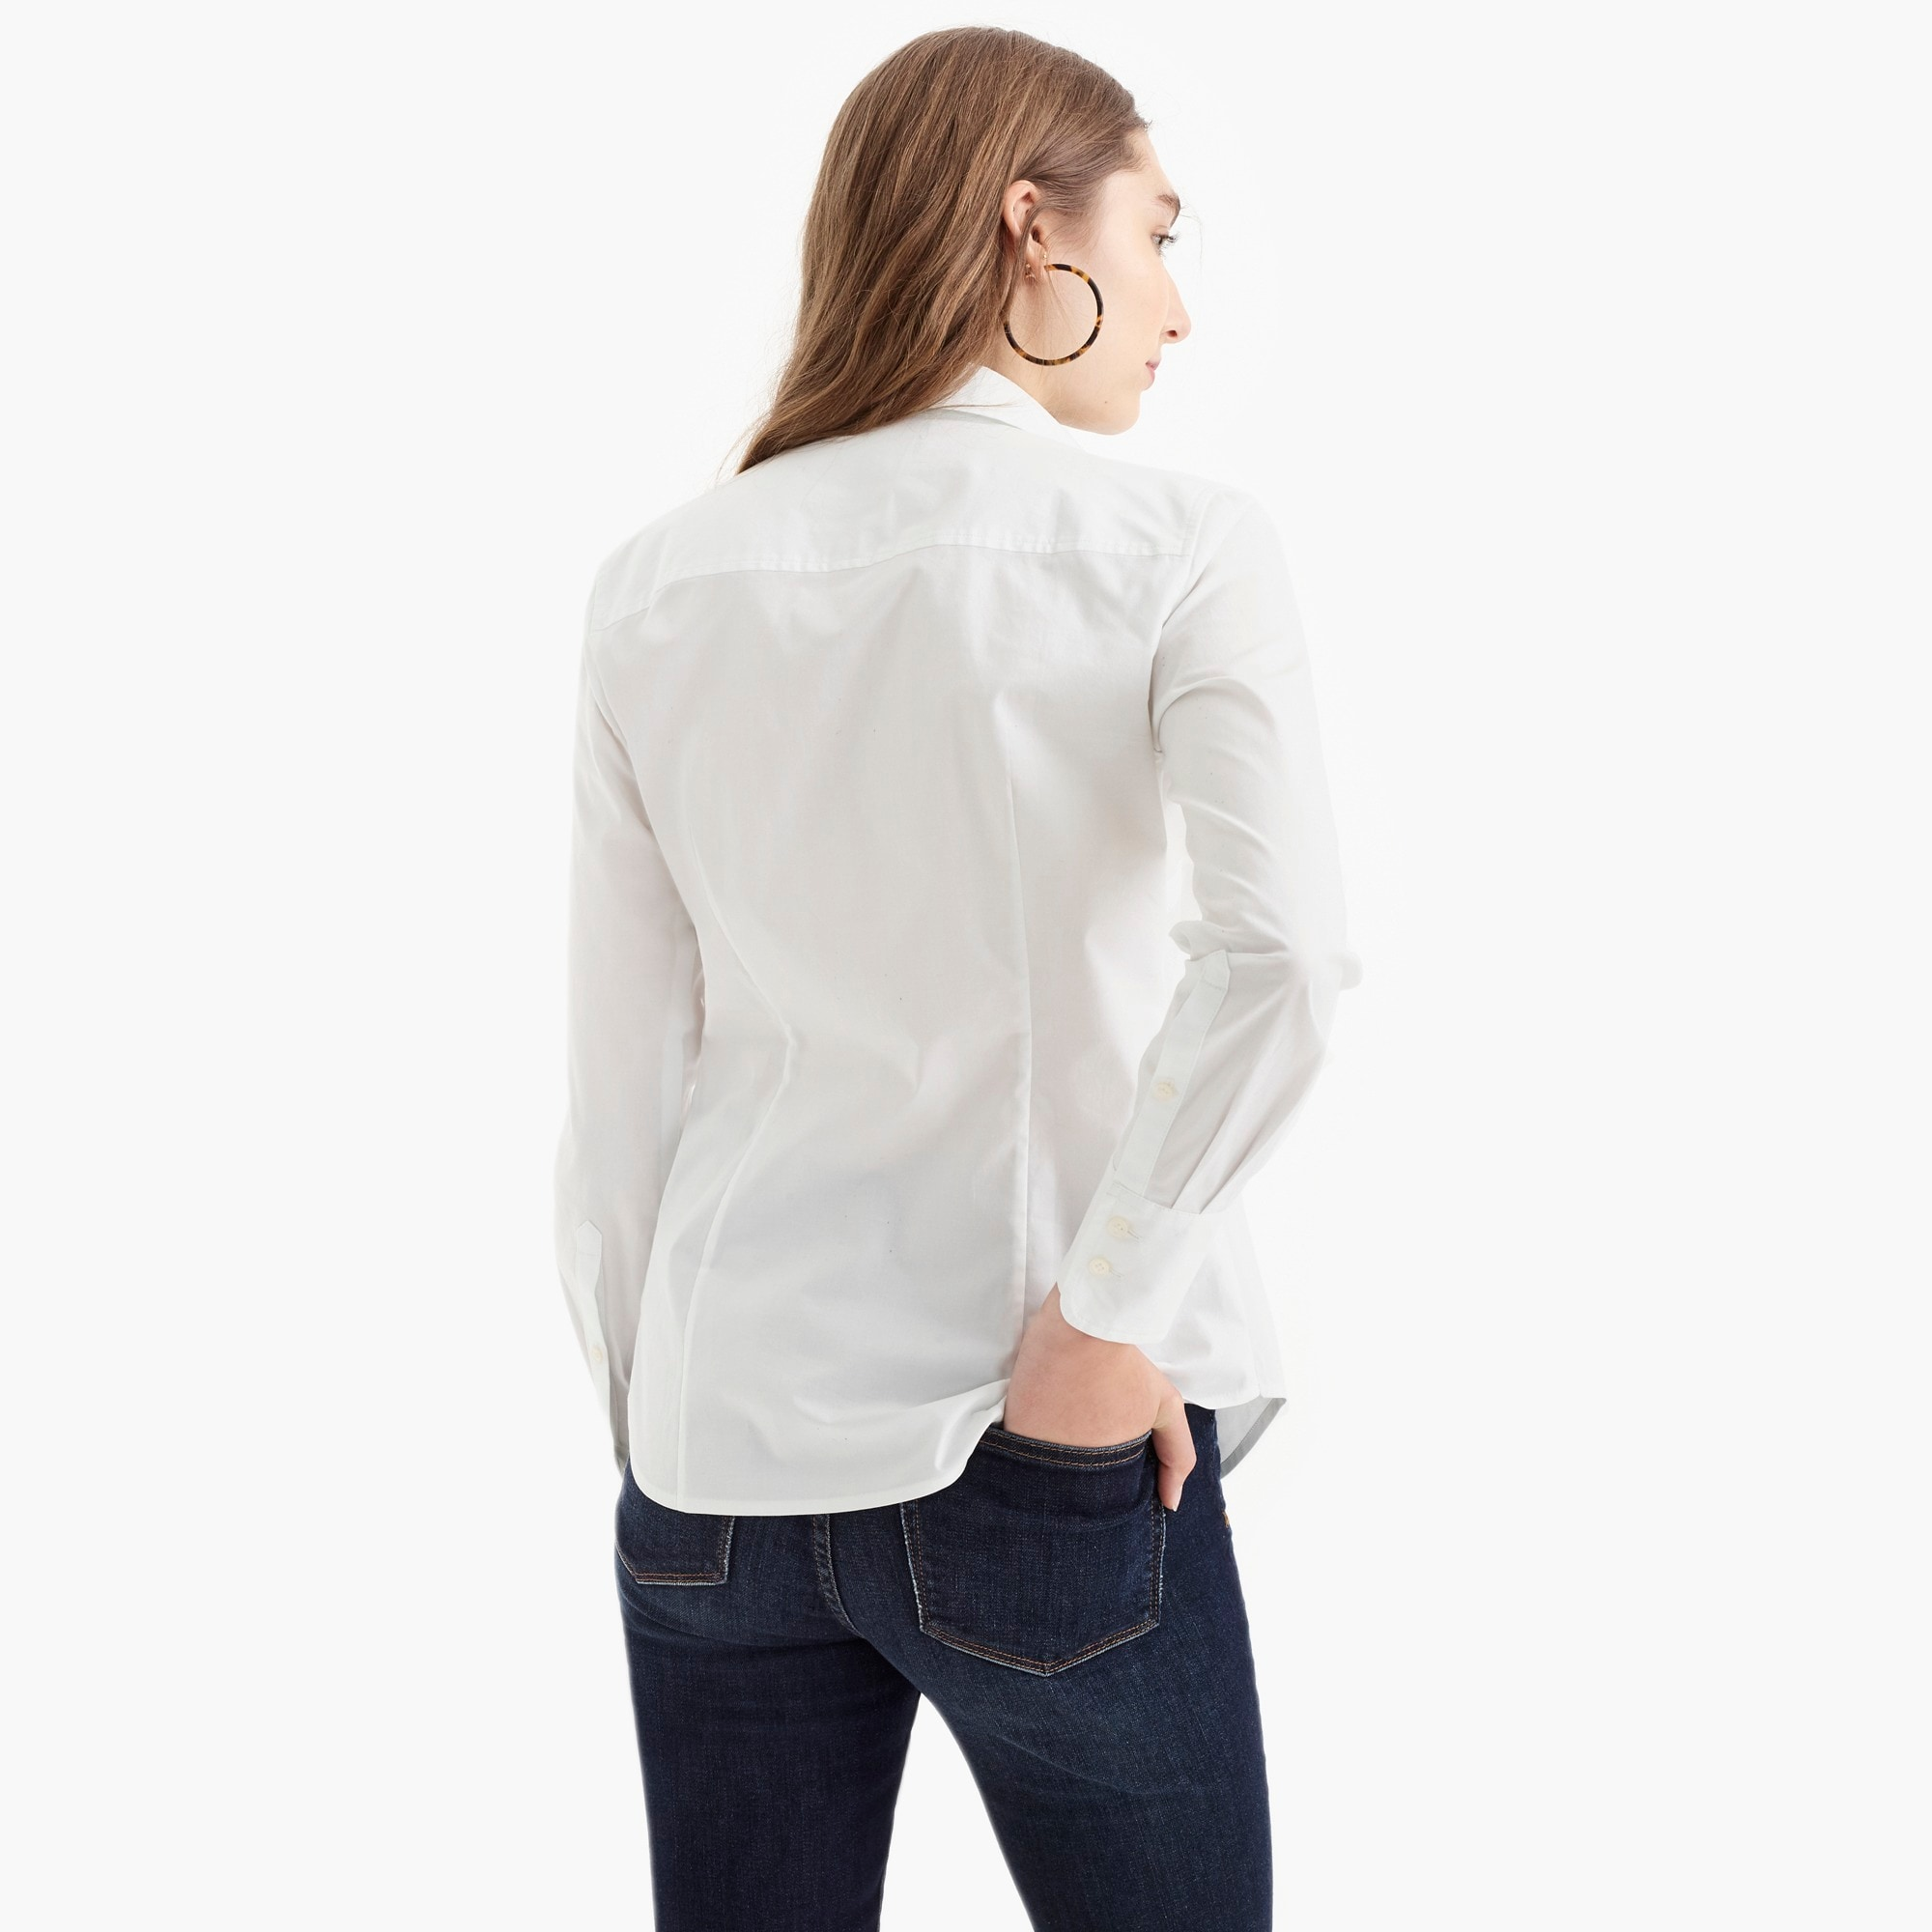 Image 5 for Petite curvy slim stretch perfect shirt